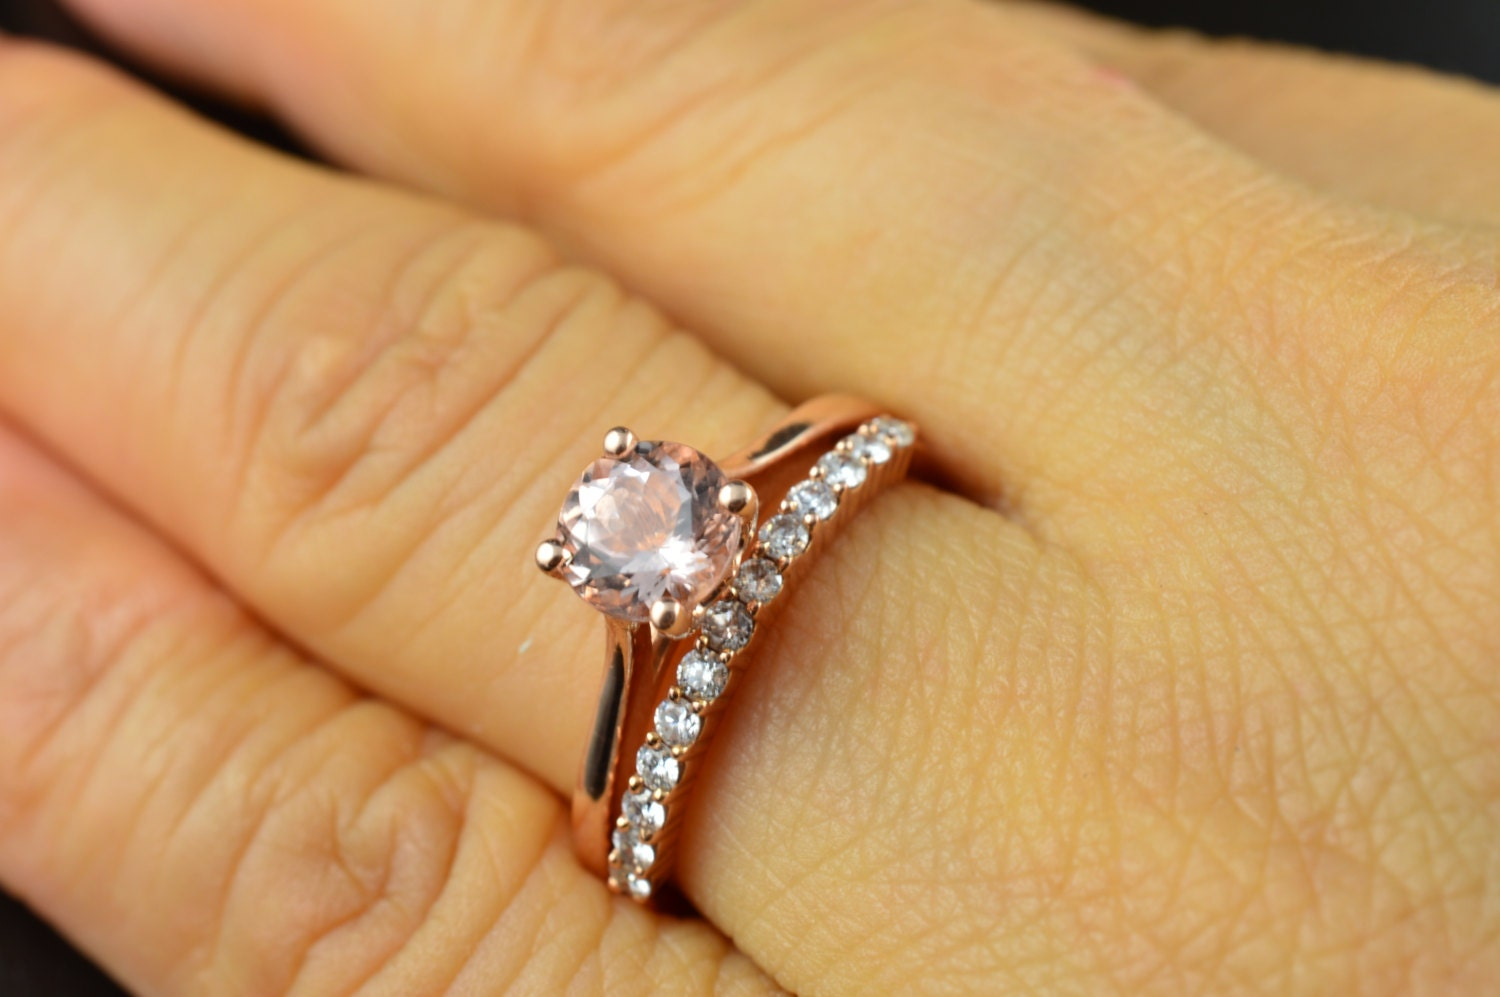 zoom - Solitaire Engagement Ring With Diamond Wedding Band